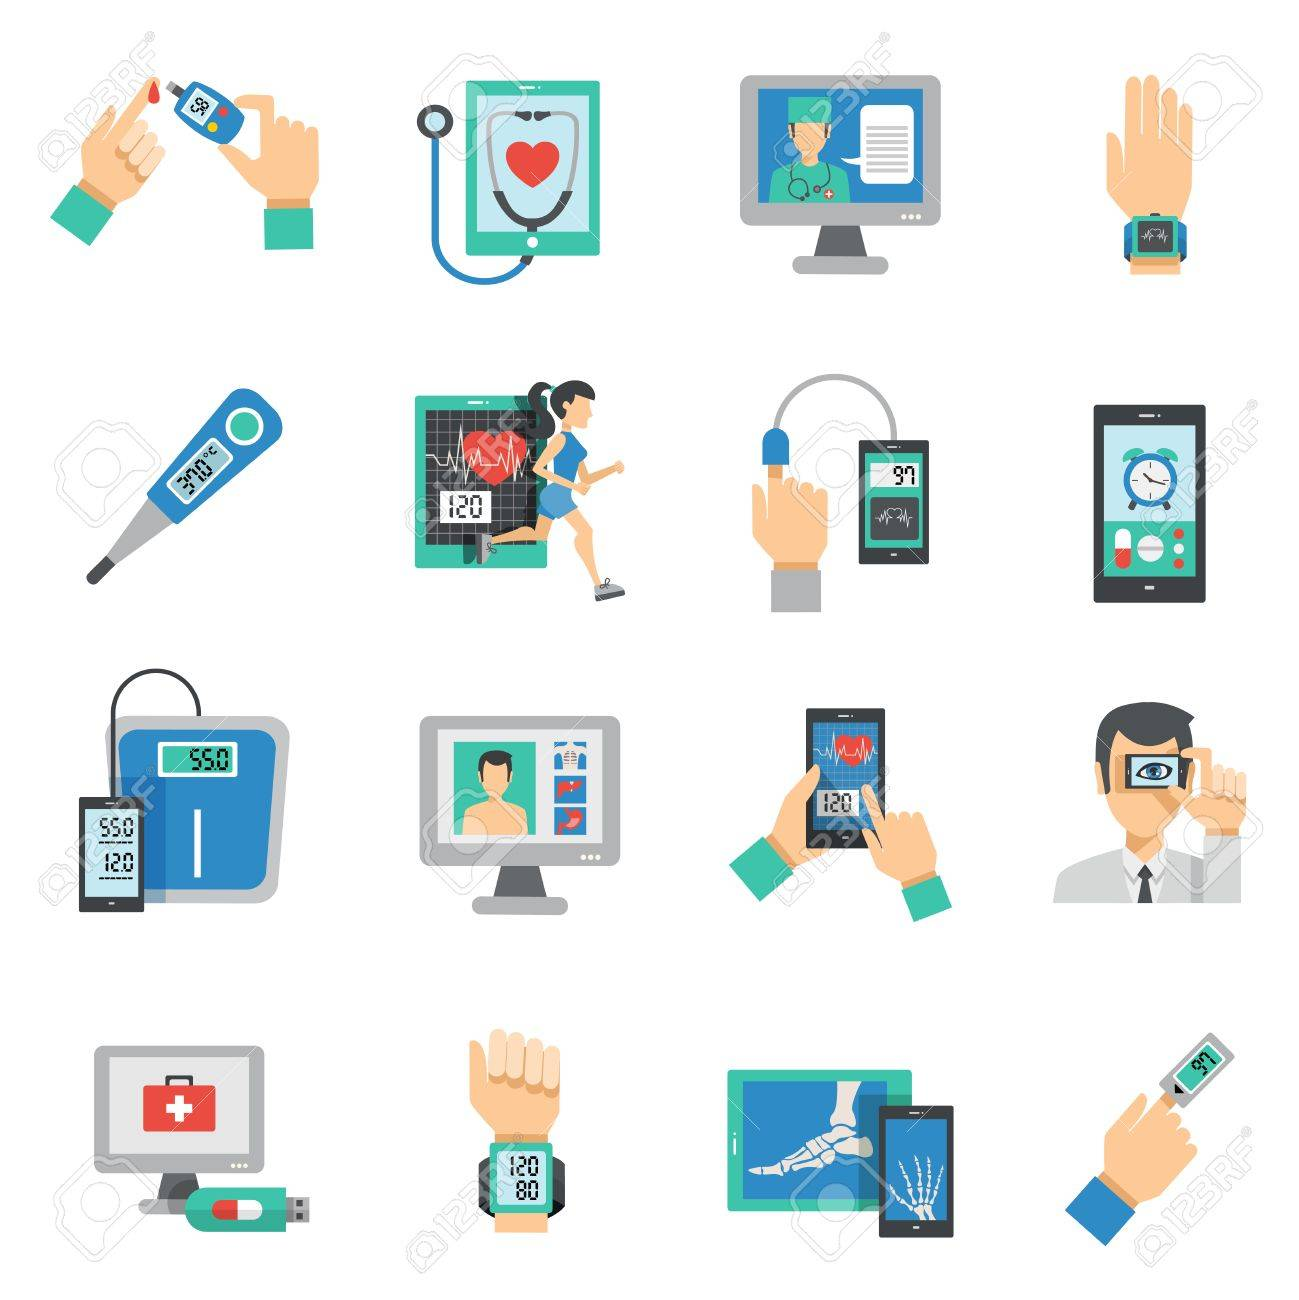 Digital health icons flat set with medical technologies symbols isolated vector illustration - 48259481